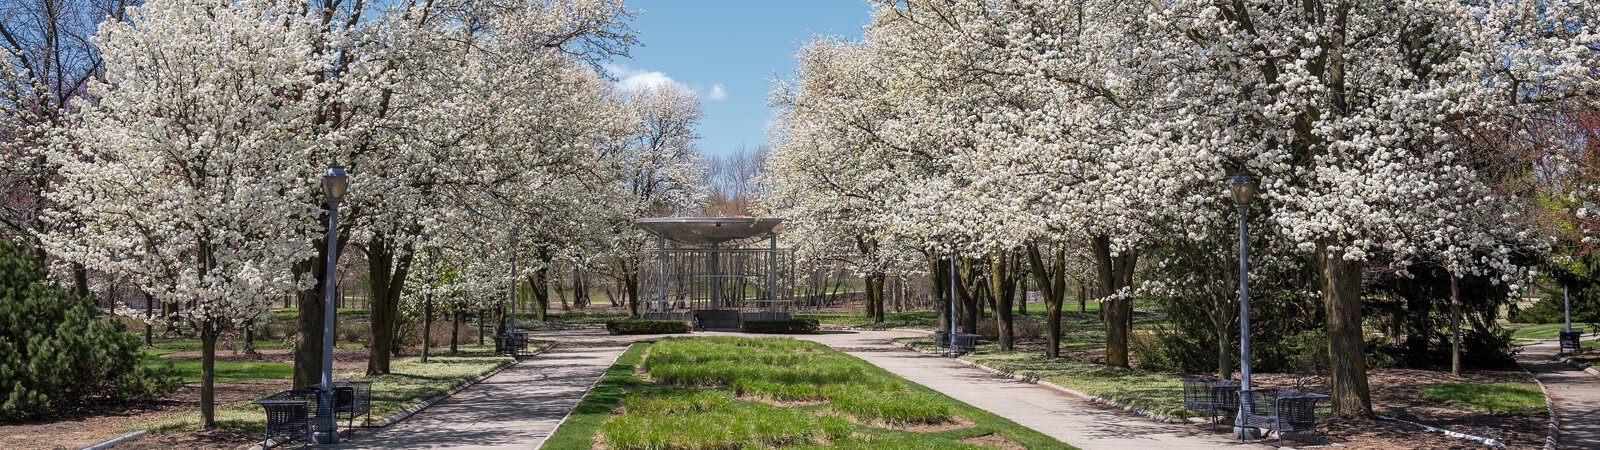 Flowering pear trees beautify Headwaters Park in downtown Fort Wayne.